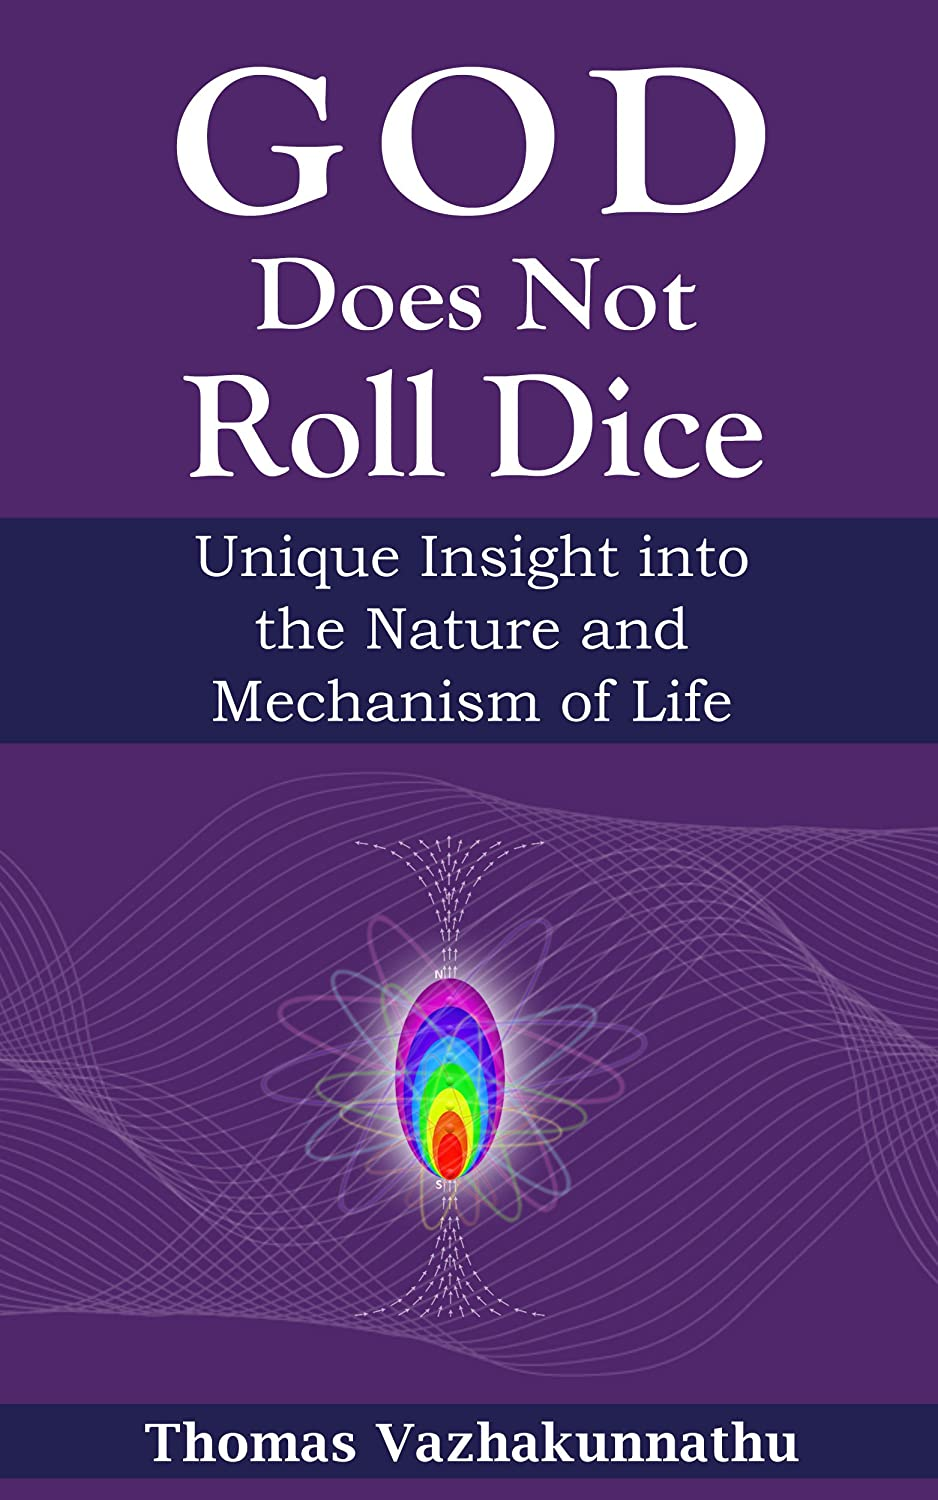 God-Does-Not-Roll-Dice-Cover1